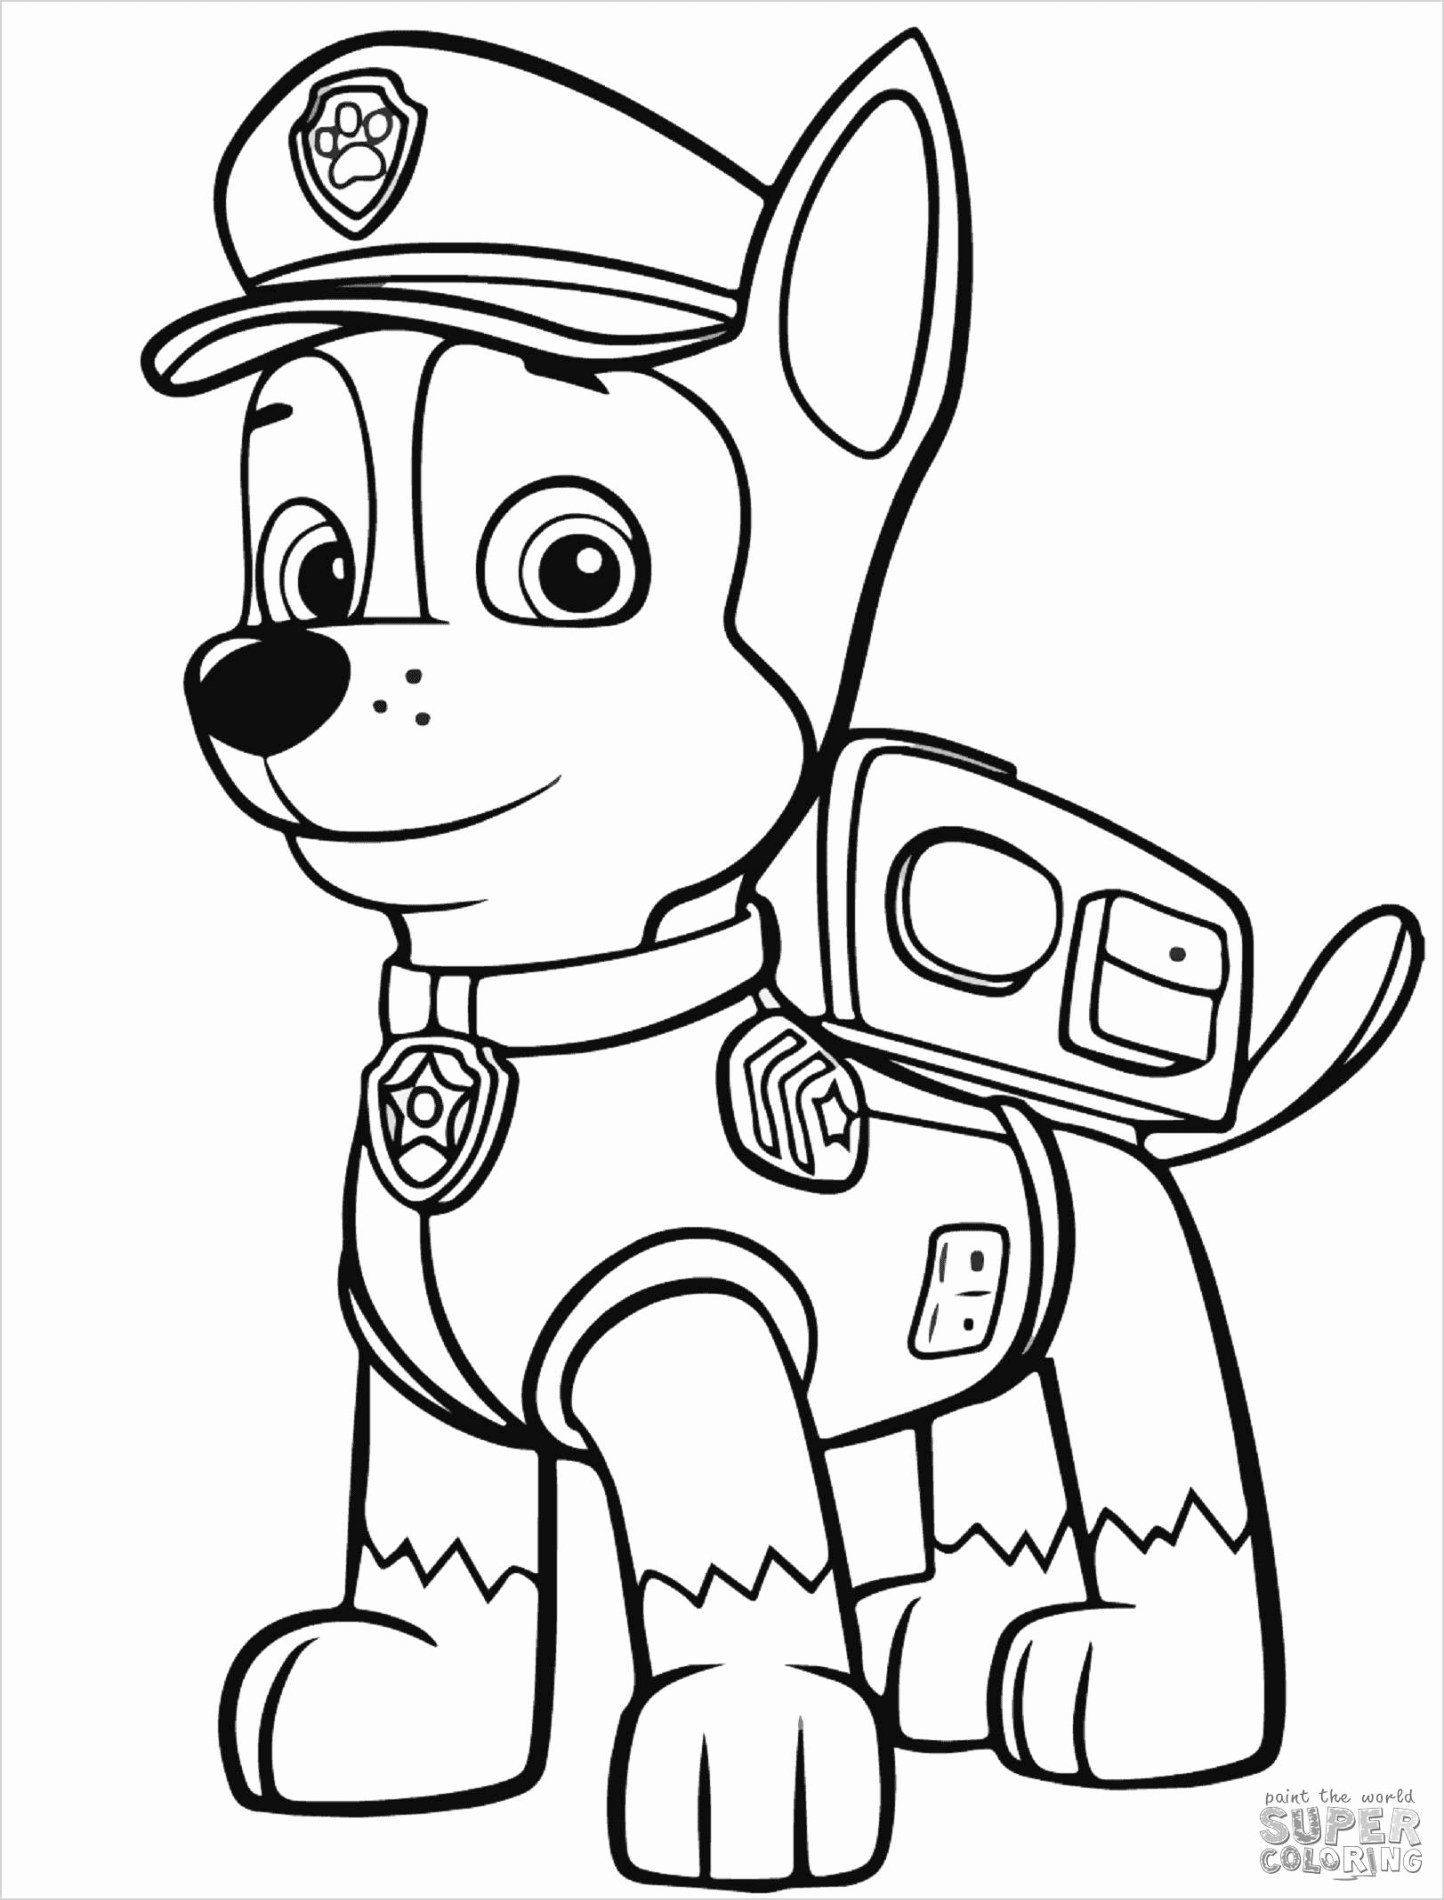 Coloring Pic Of Dogs Lovely How To Draw A Dog Beautiful Paw Patrol Coloring Pages Best In 2020 Paw Patrol Coloring Pages Paw Patrol Coloring Chase Paw Patrol